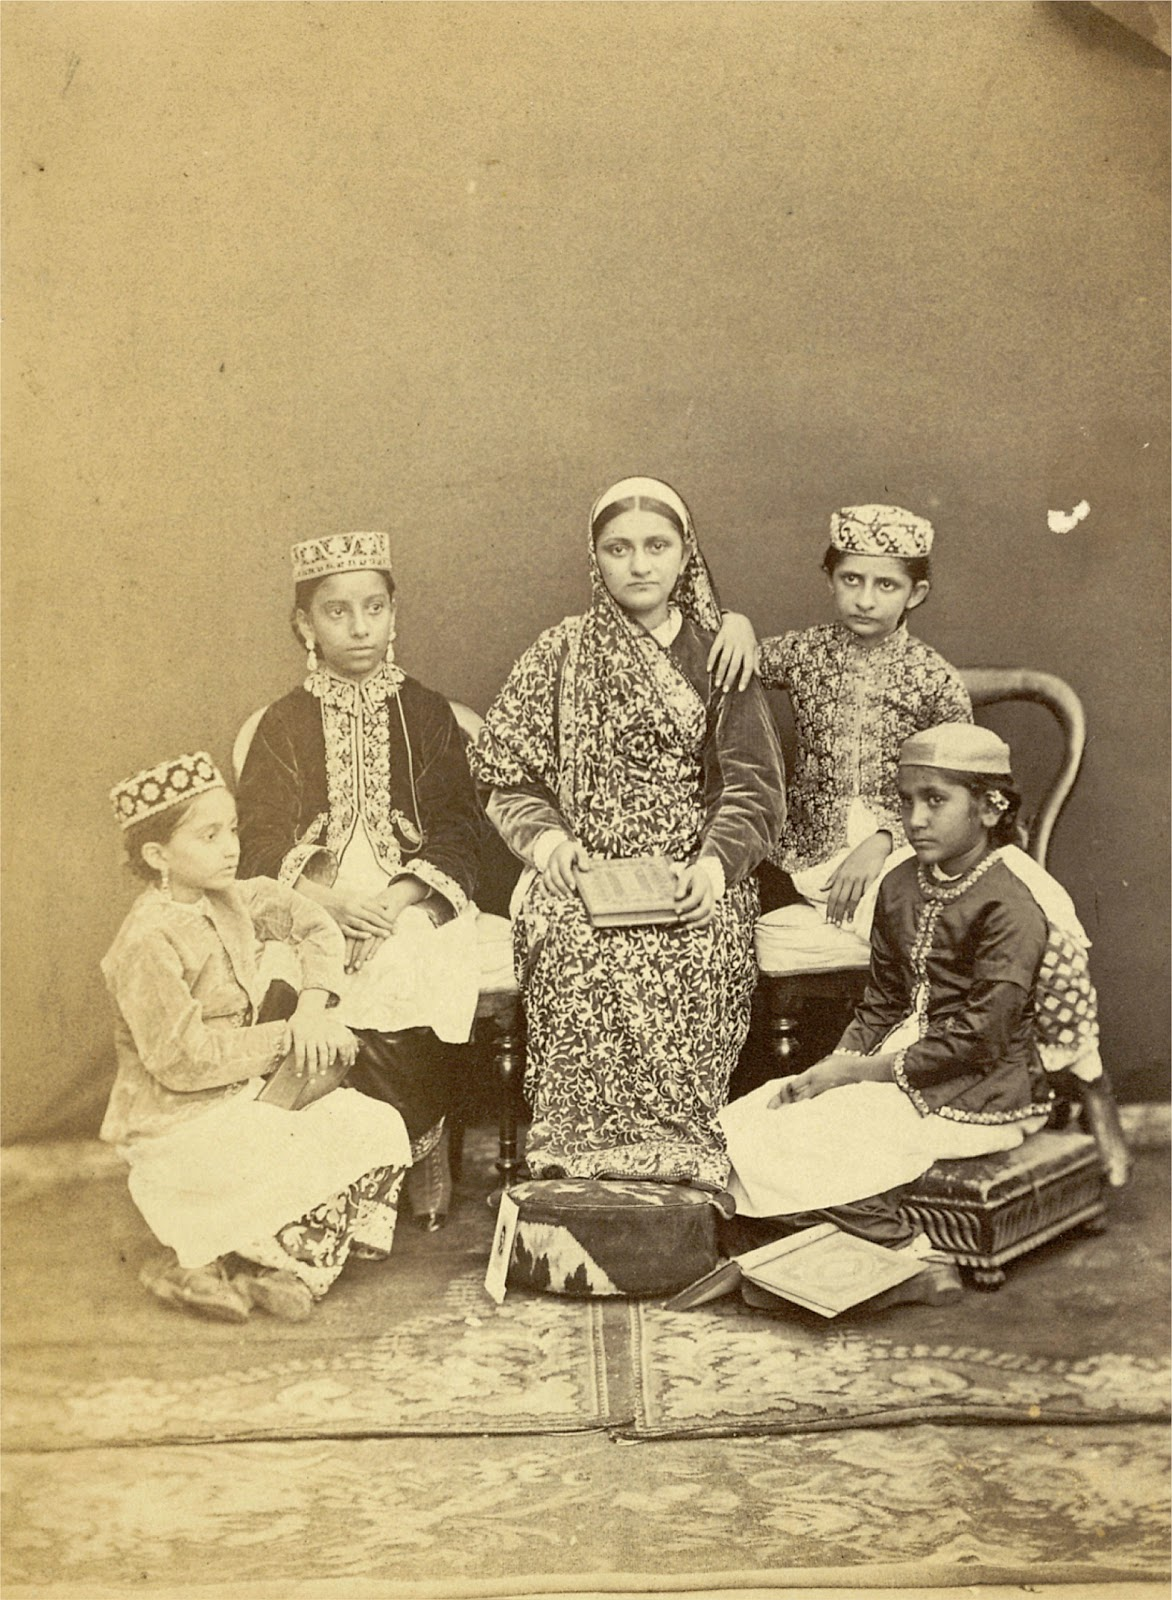 Vintage Photograph of a Group of Students in the Alexandra Native Girls' Institution at Bombay (Mumbai) 1873